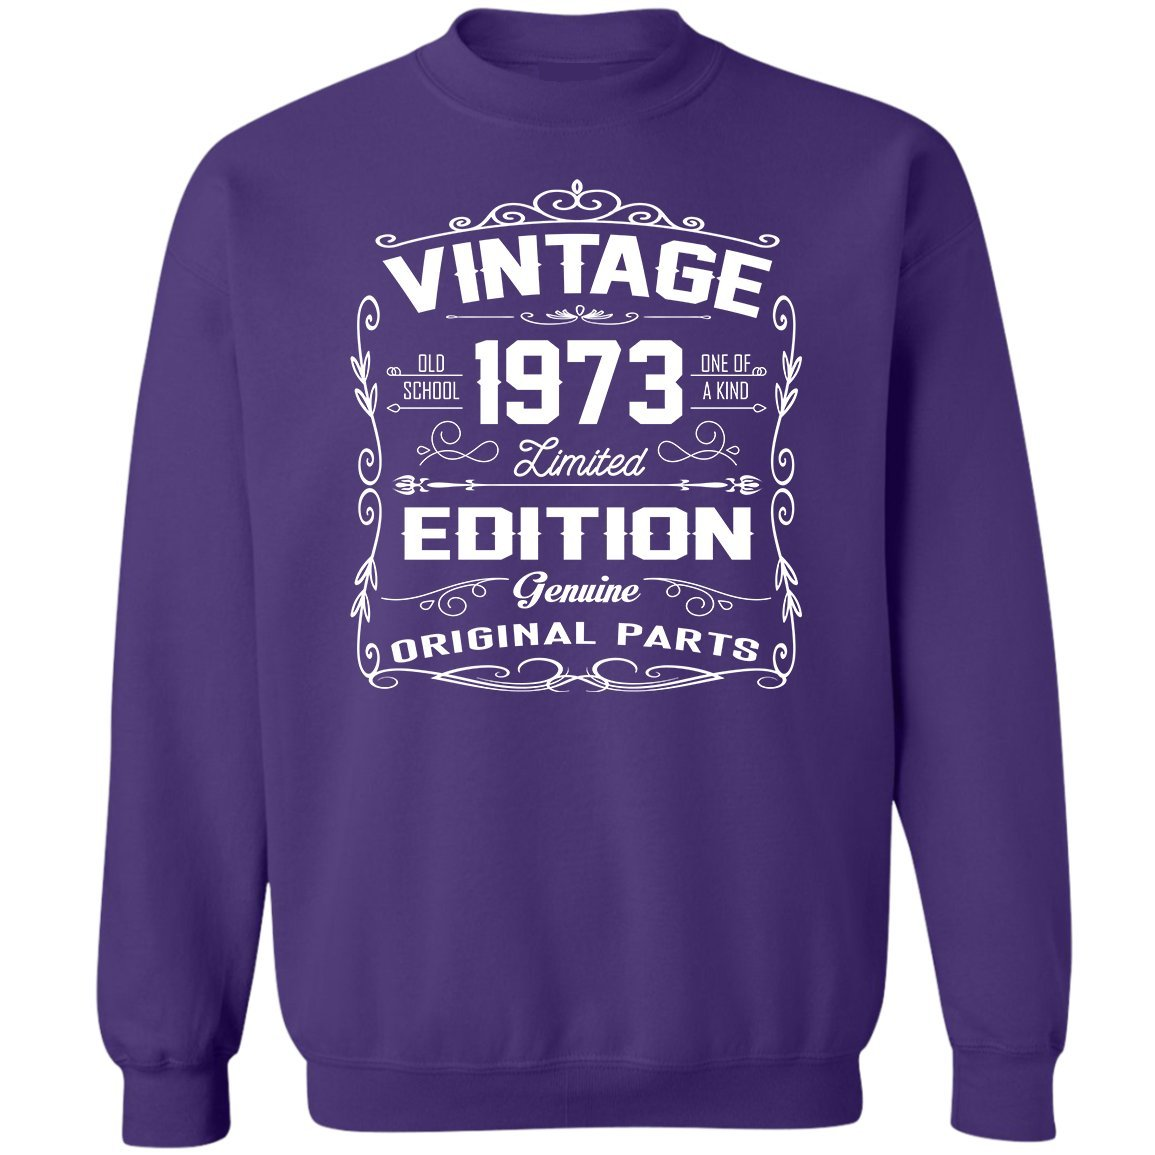 VADOBA Vintage 1973 Limited Edition Shirts Awesome Gifts For Birthday Sweatshirt